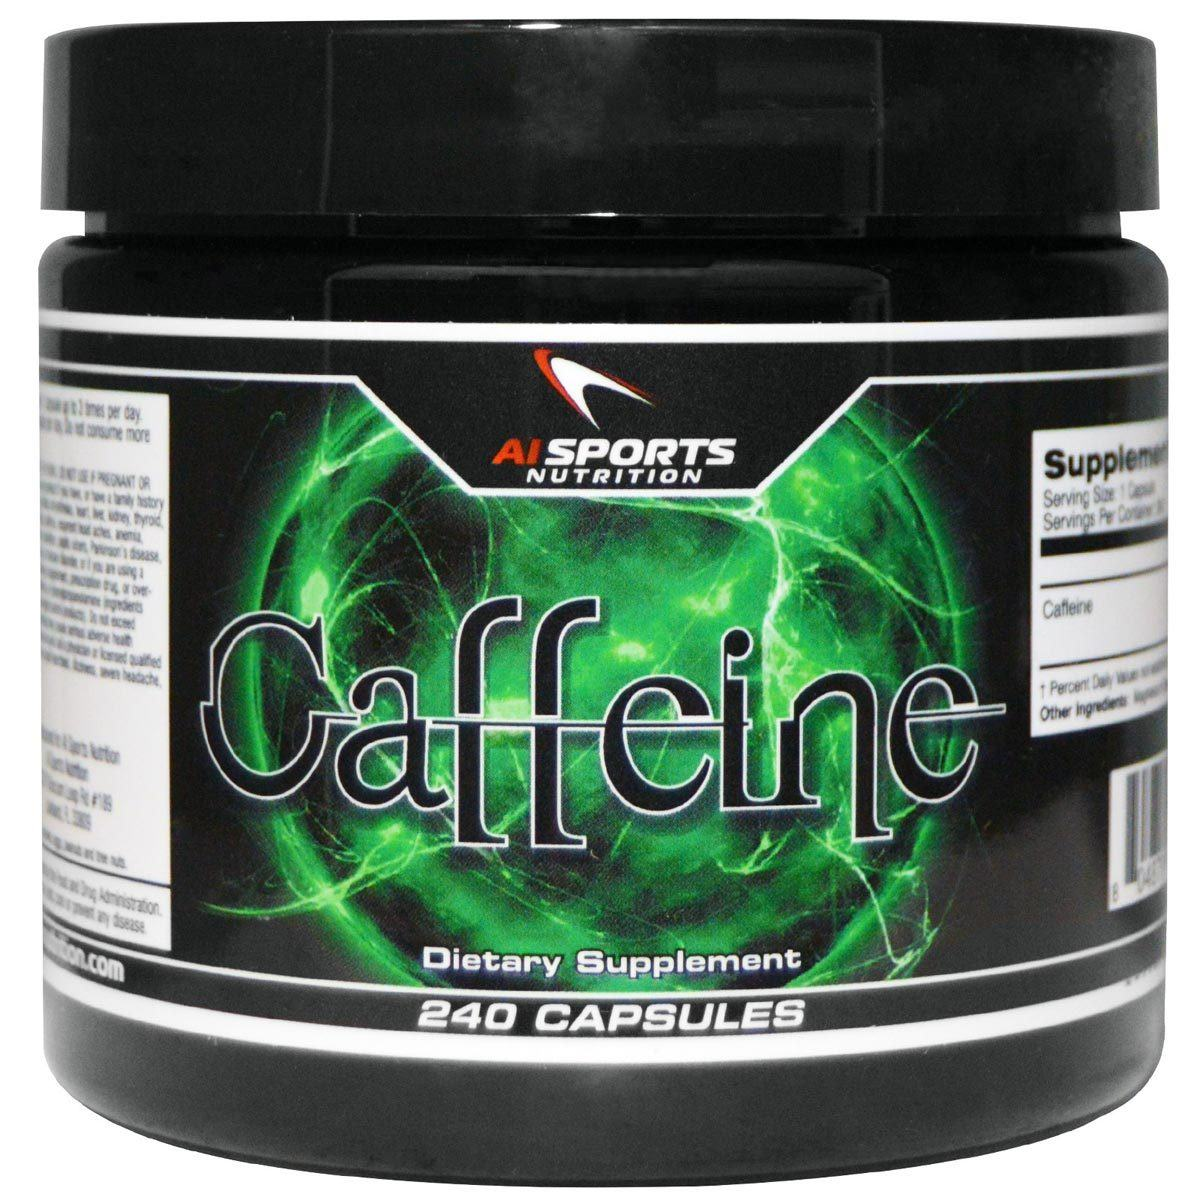 AI Sports Nutrition Caffeine 240 Caps Other Supplements AI Sports Nutrition  (1058778284075)